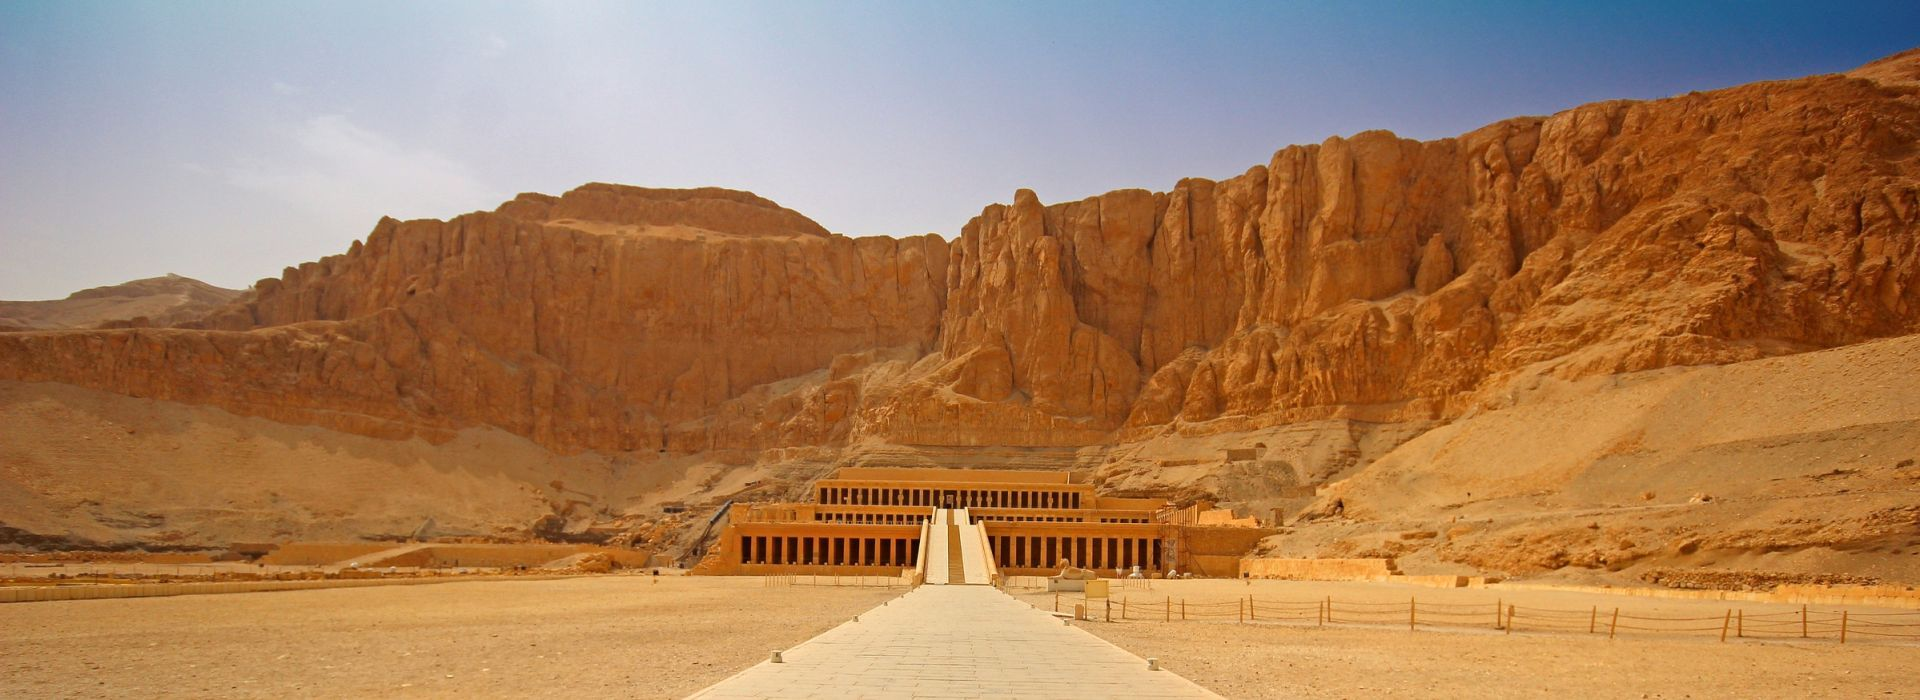 River cruise Tours in Egypt